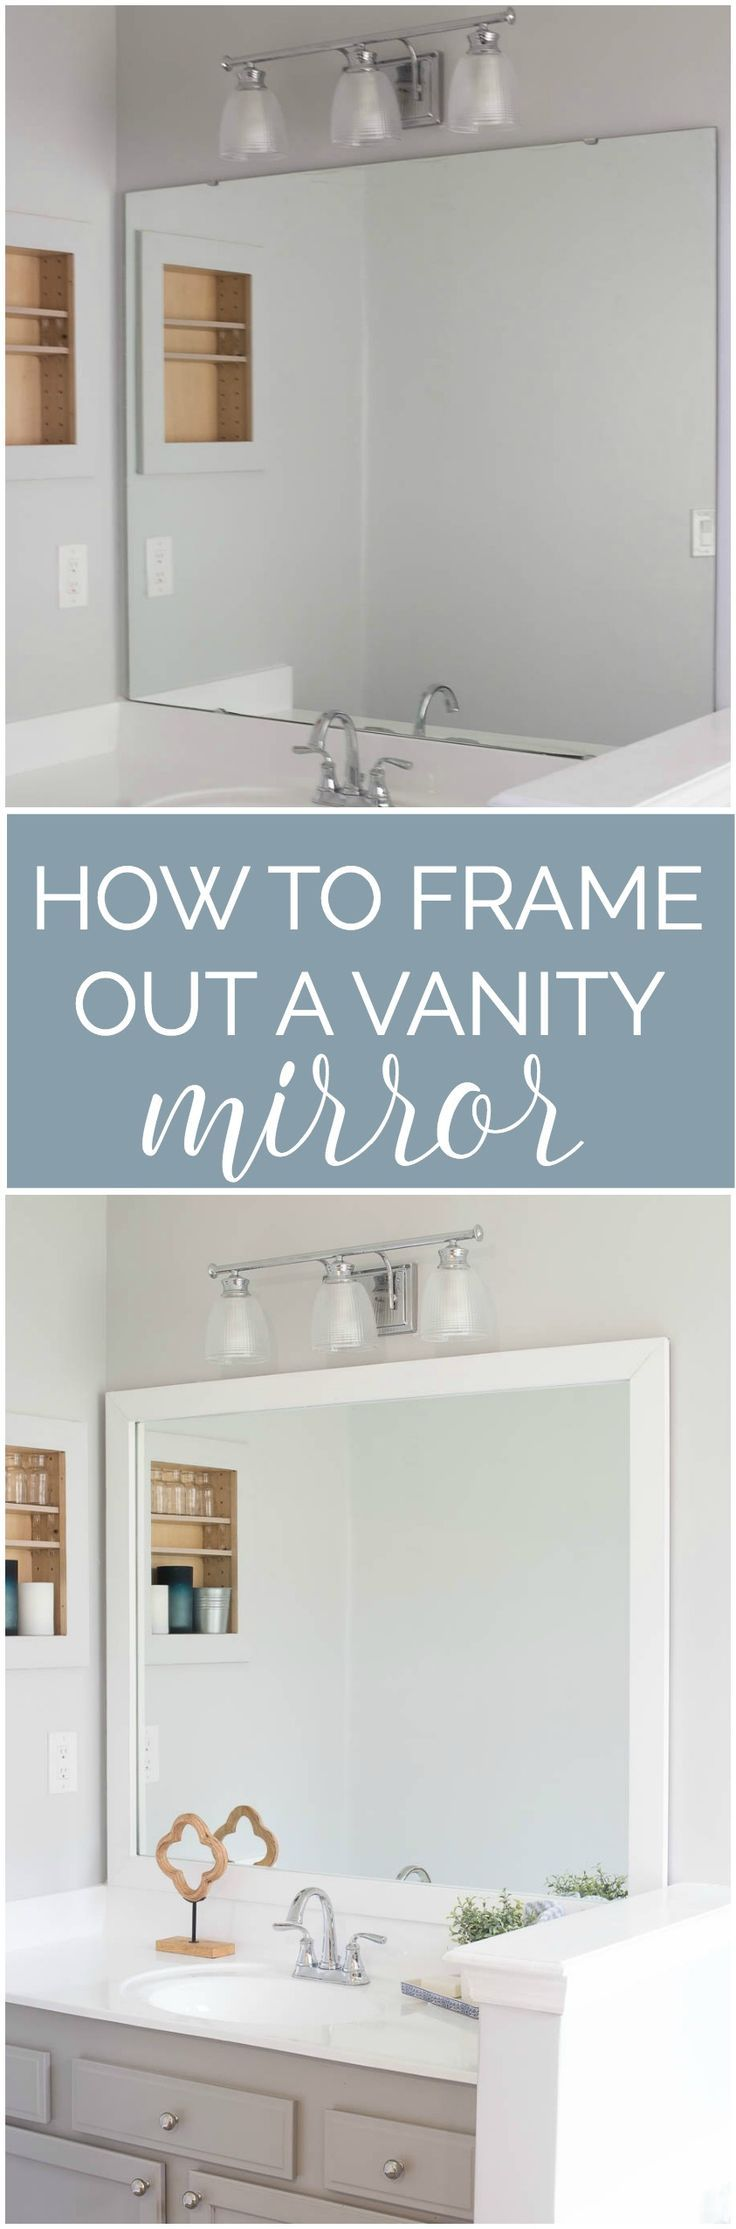 Photo Gallery For Photographers How to Frame a Bathroom Mirror Easy DIY project